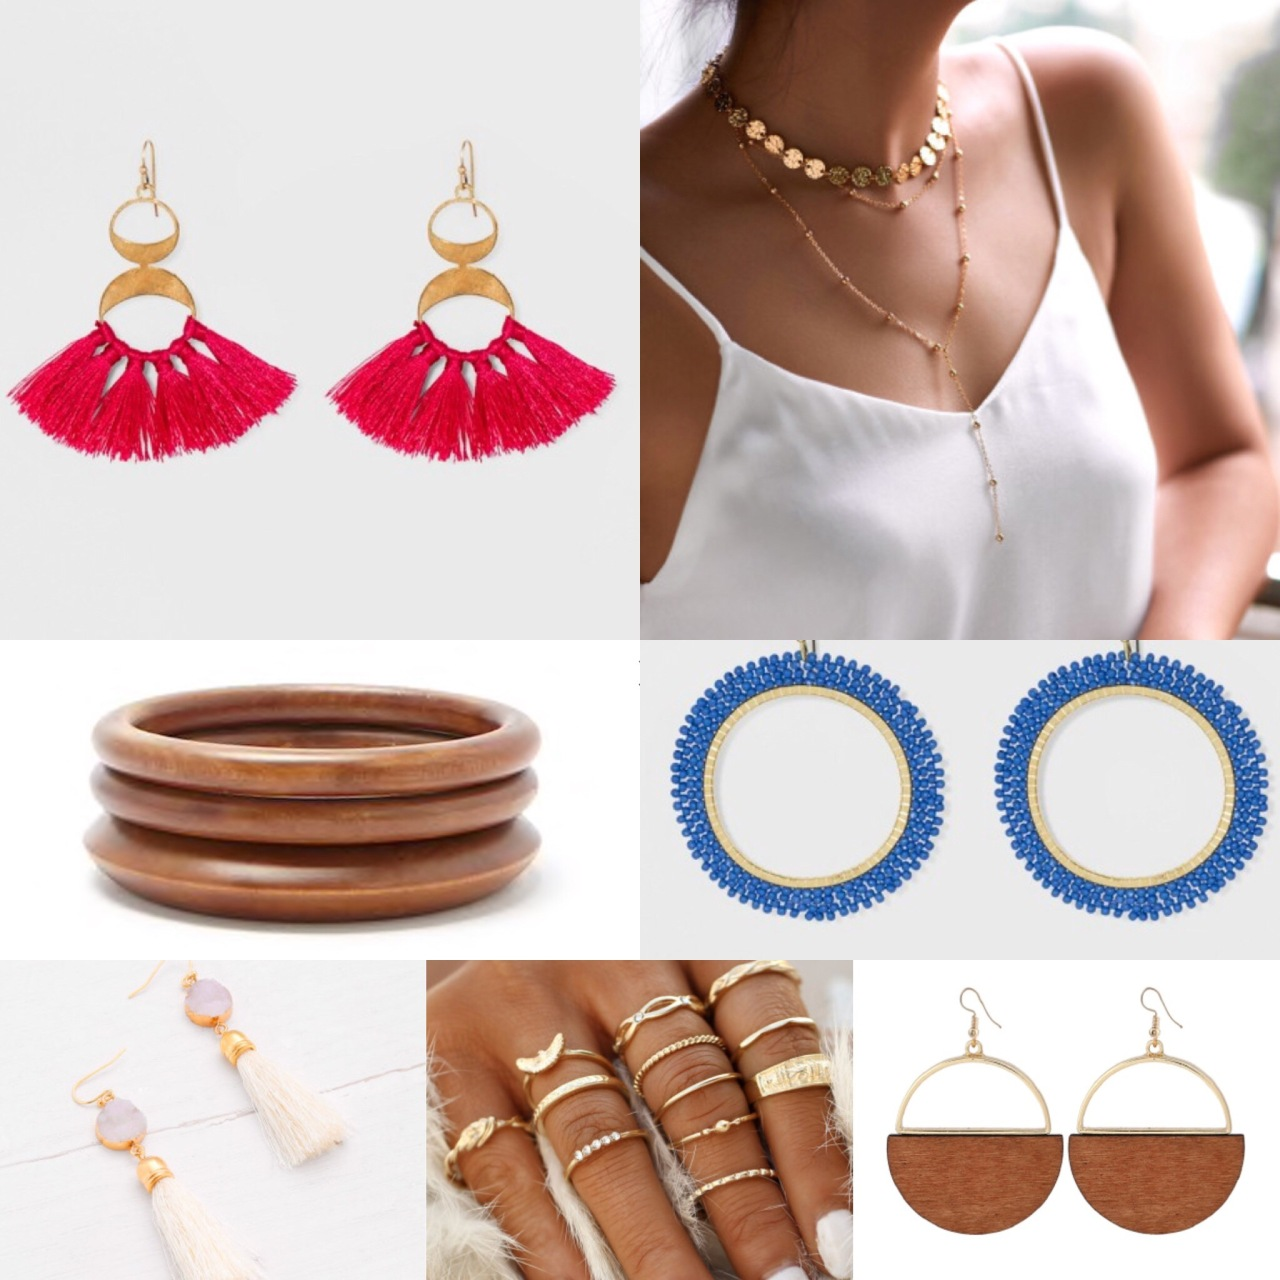 Cutest Jewelry At The BestPrices